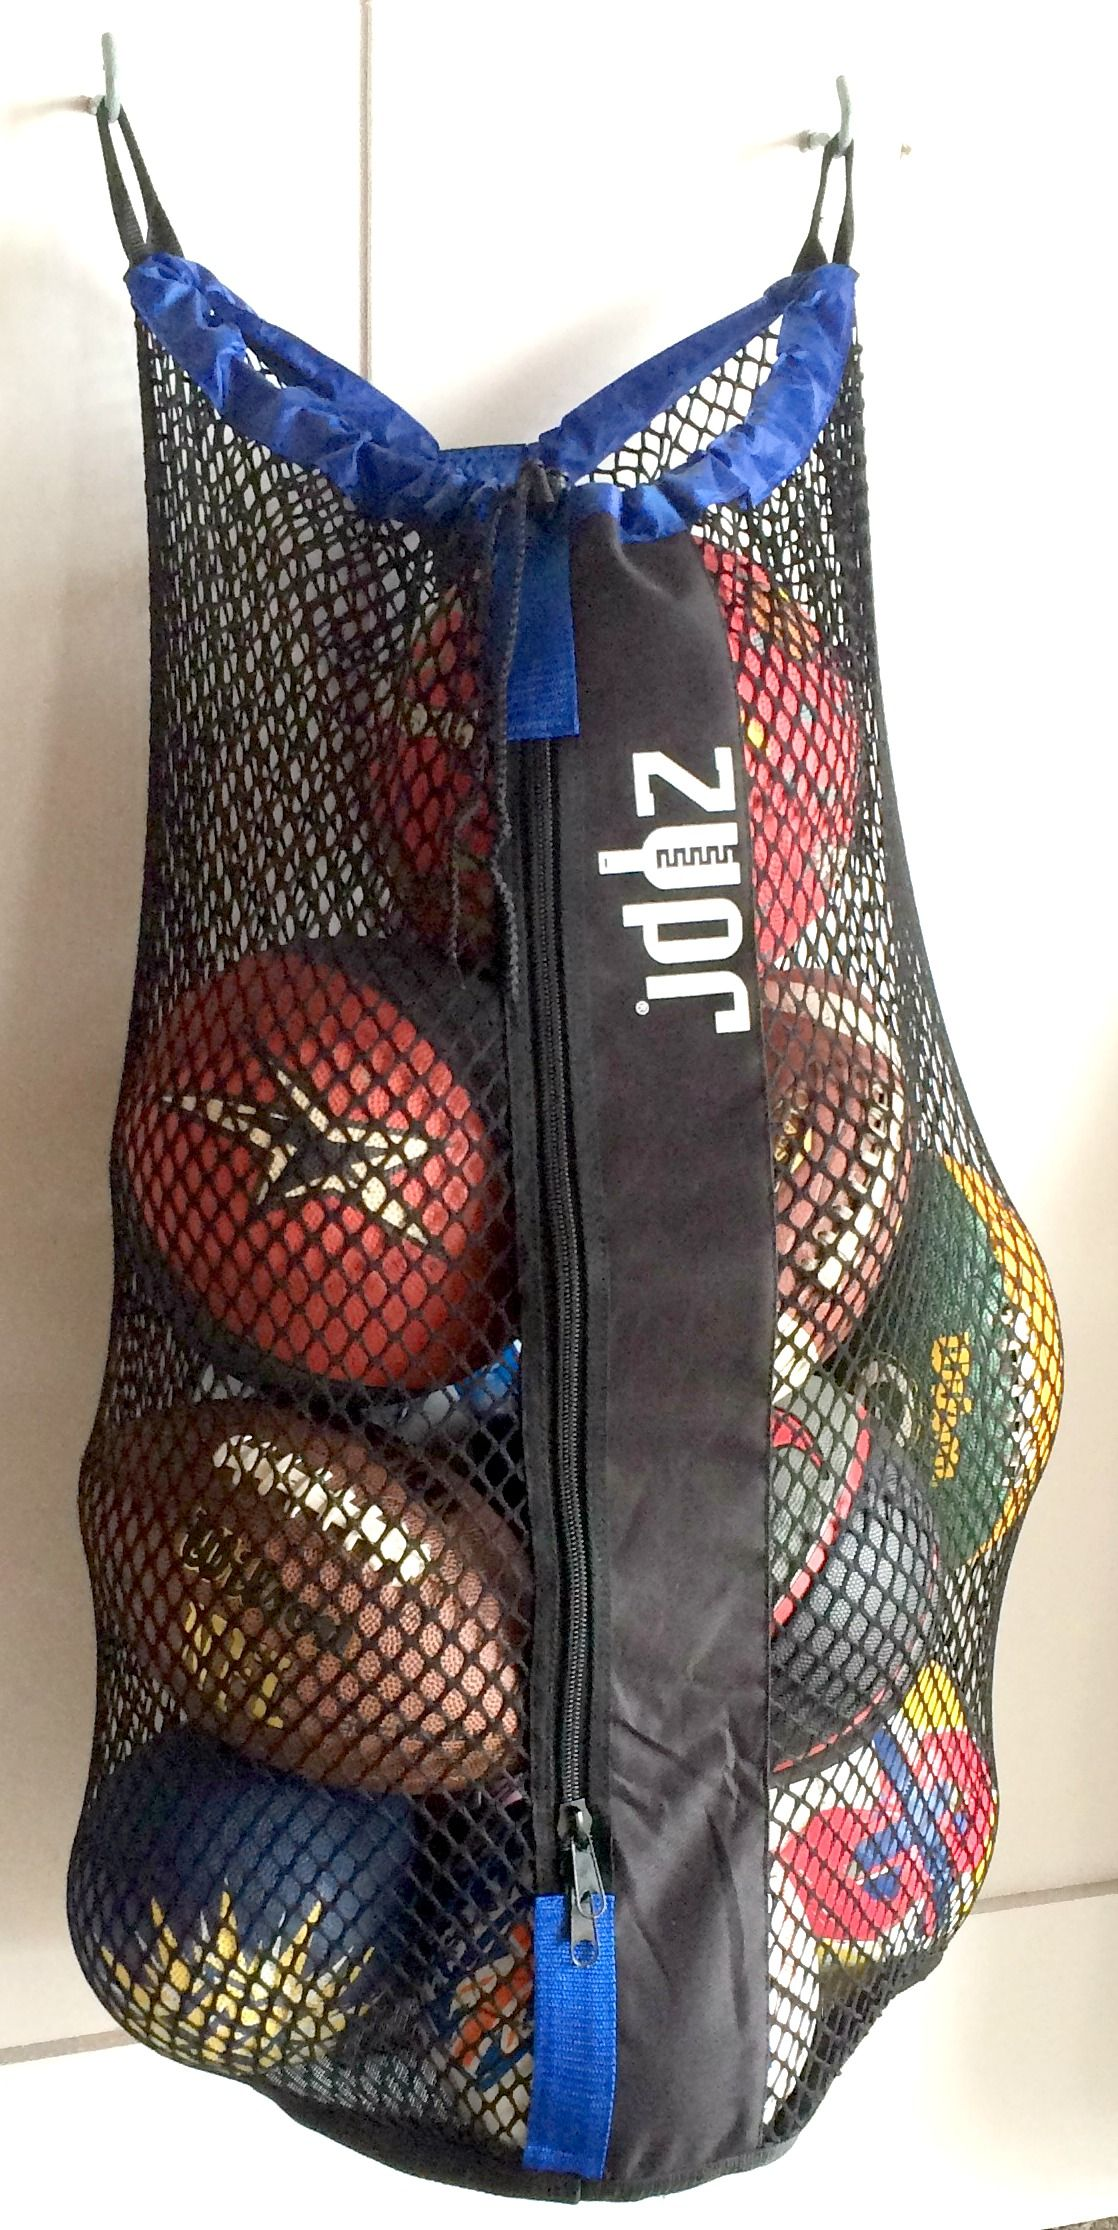 Wall Mounted Storage Net Bags For Sports Equipment